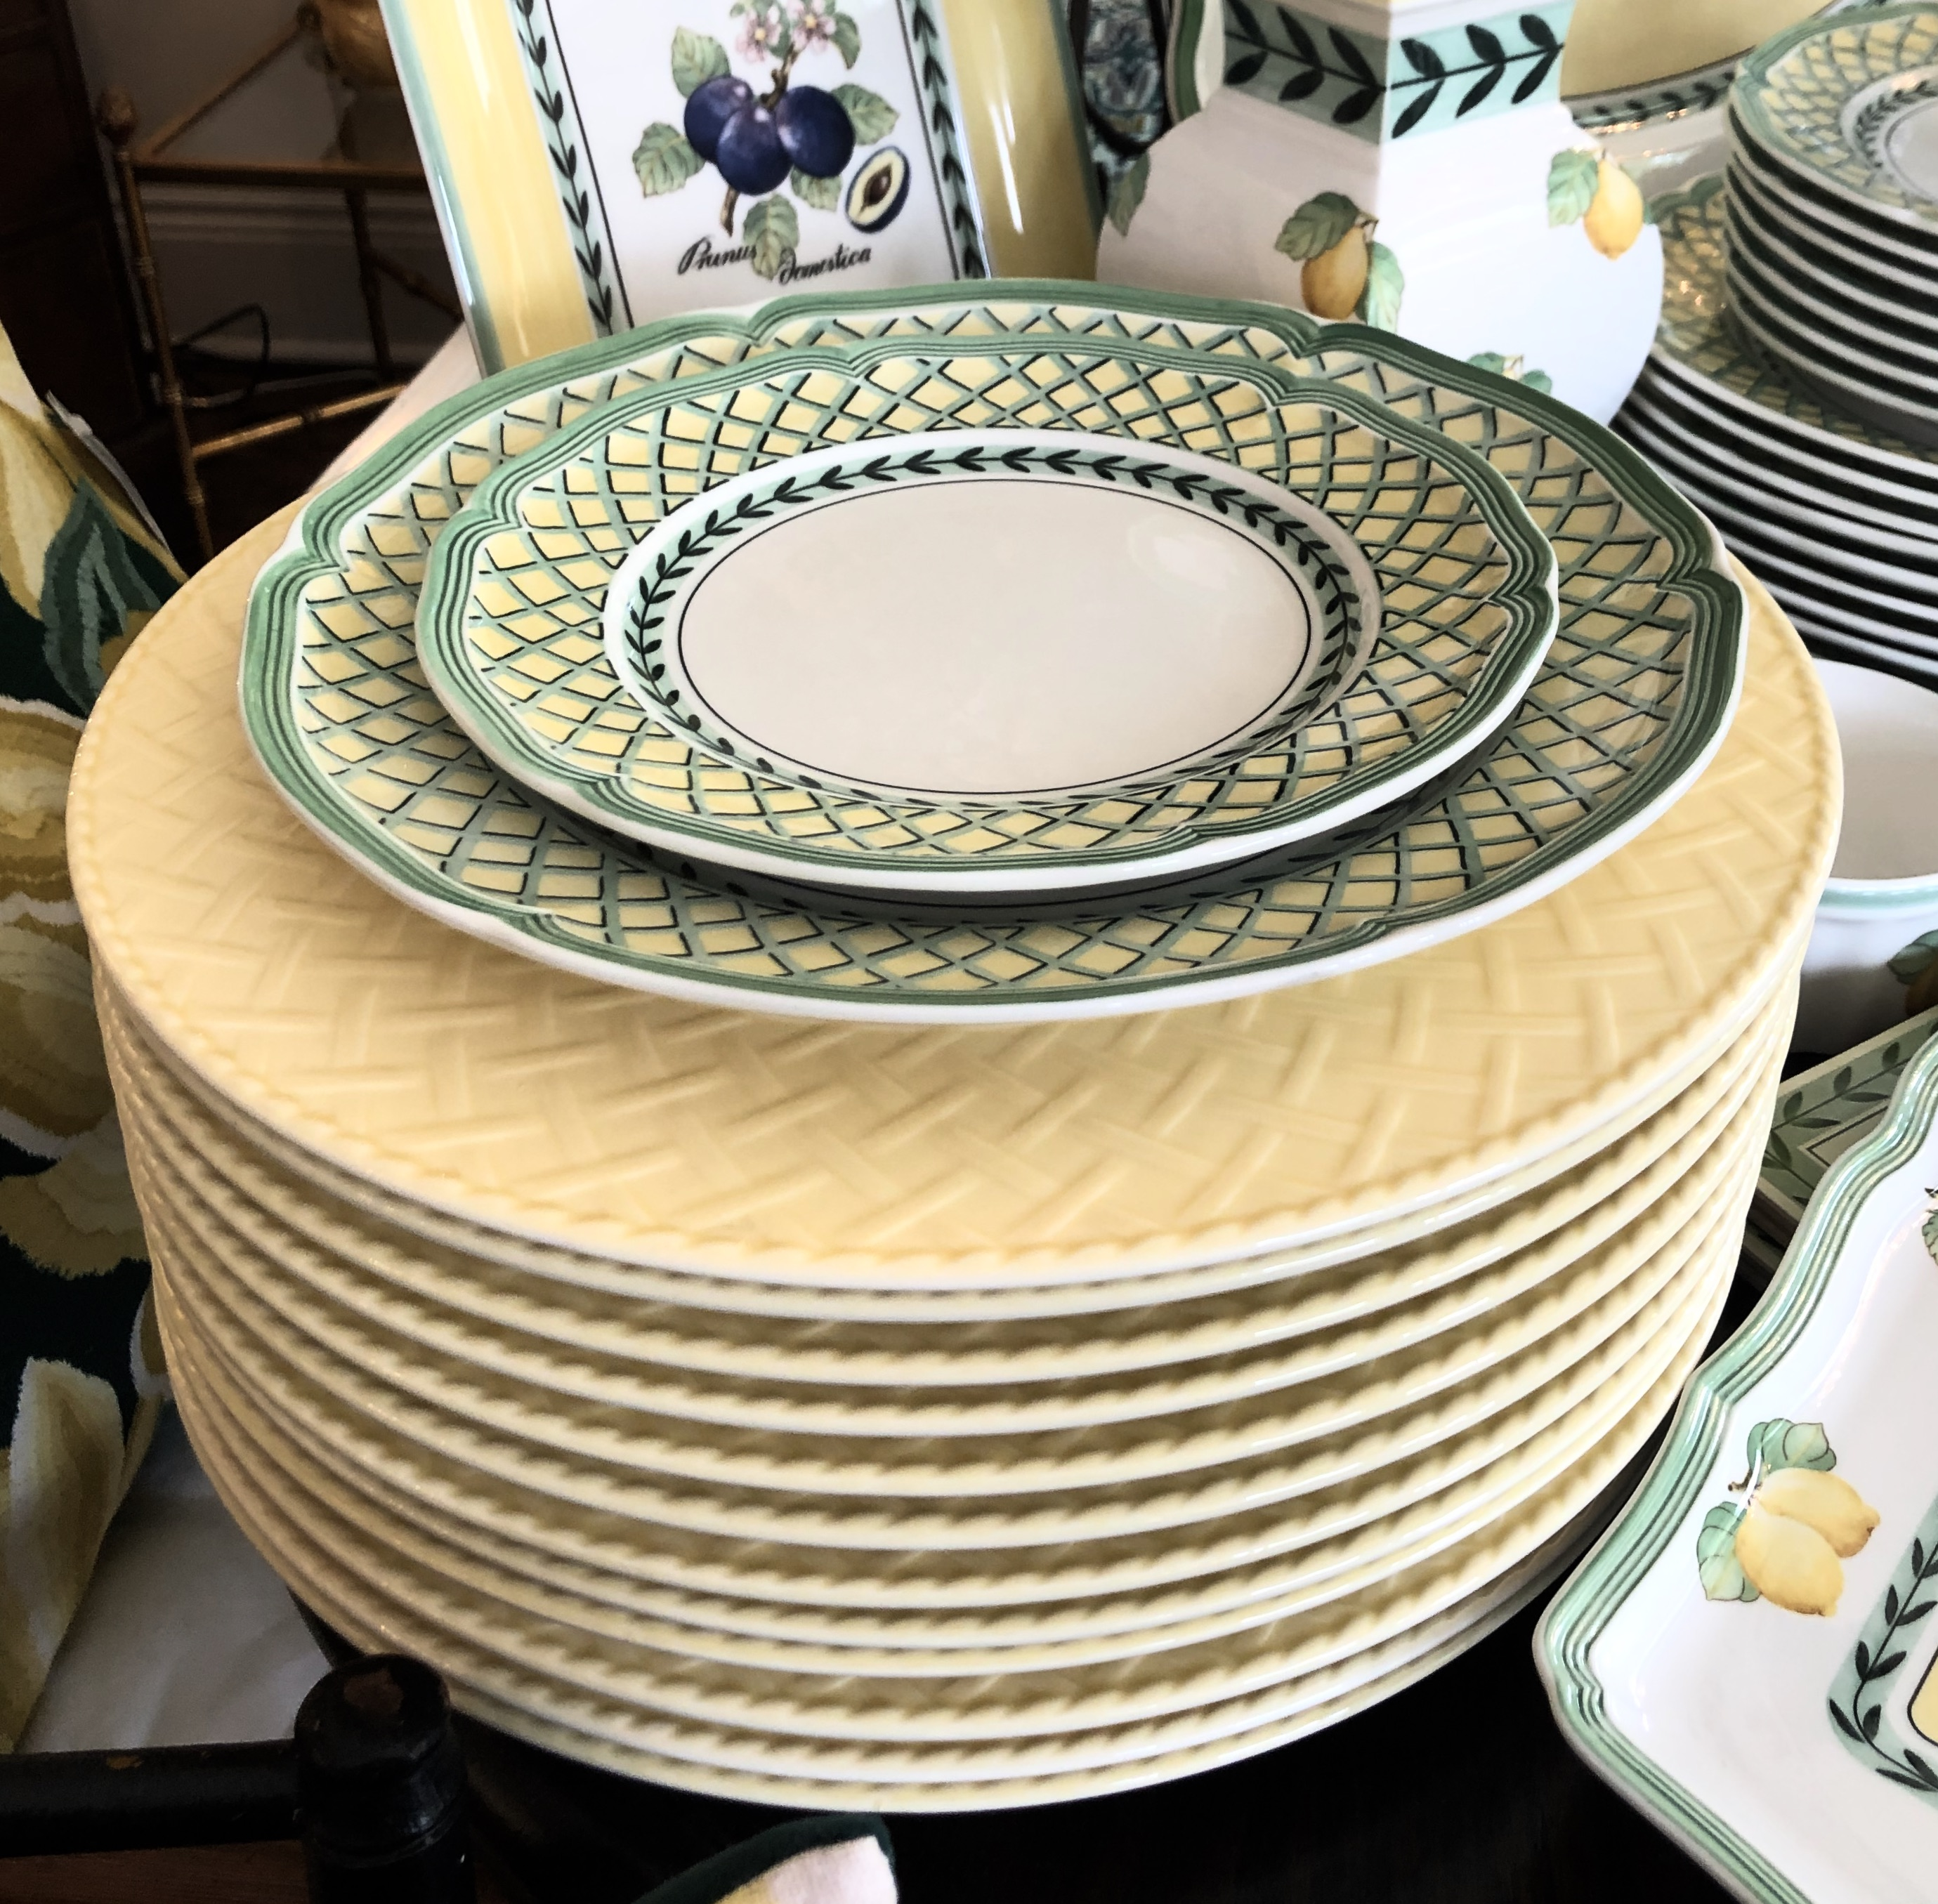 12 Villeroy & Boch Charger Plates